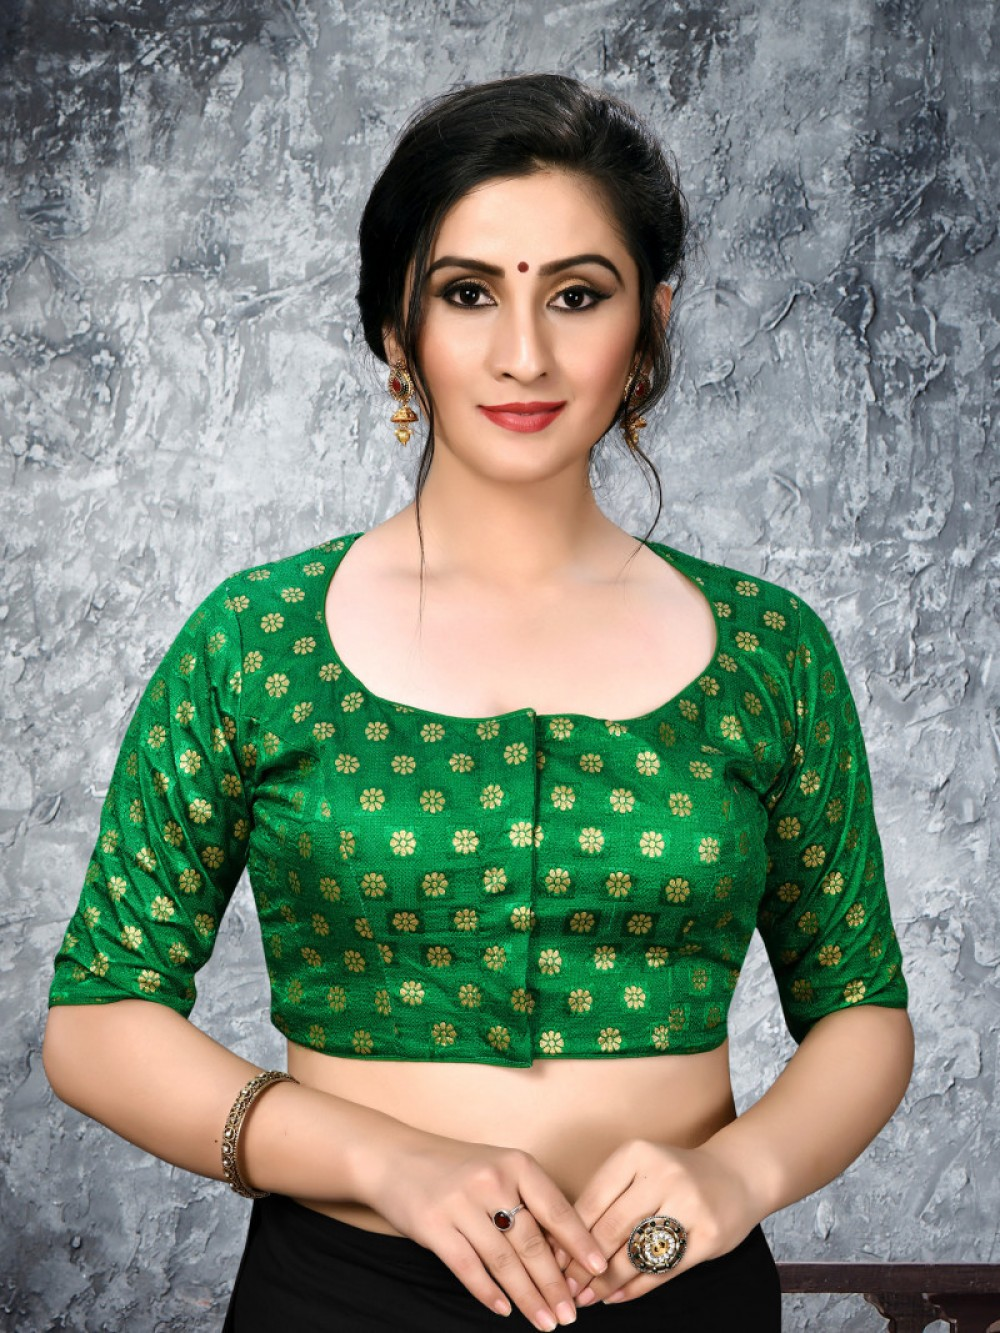 Desiring Green Colour Phantom Silk Stylish Blouse for Girls